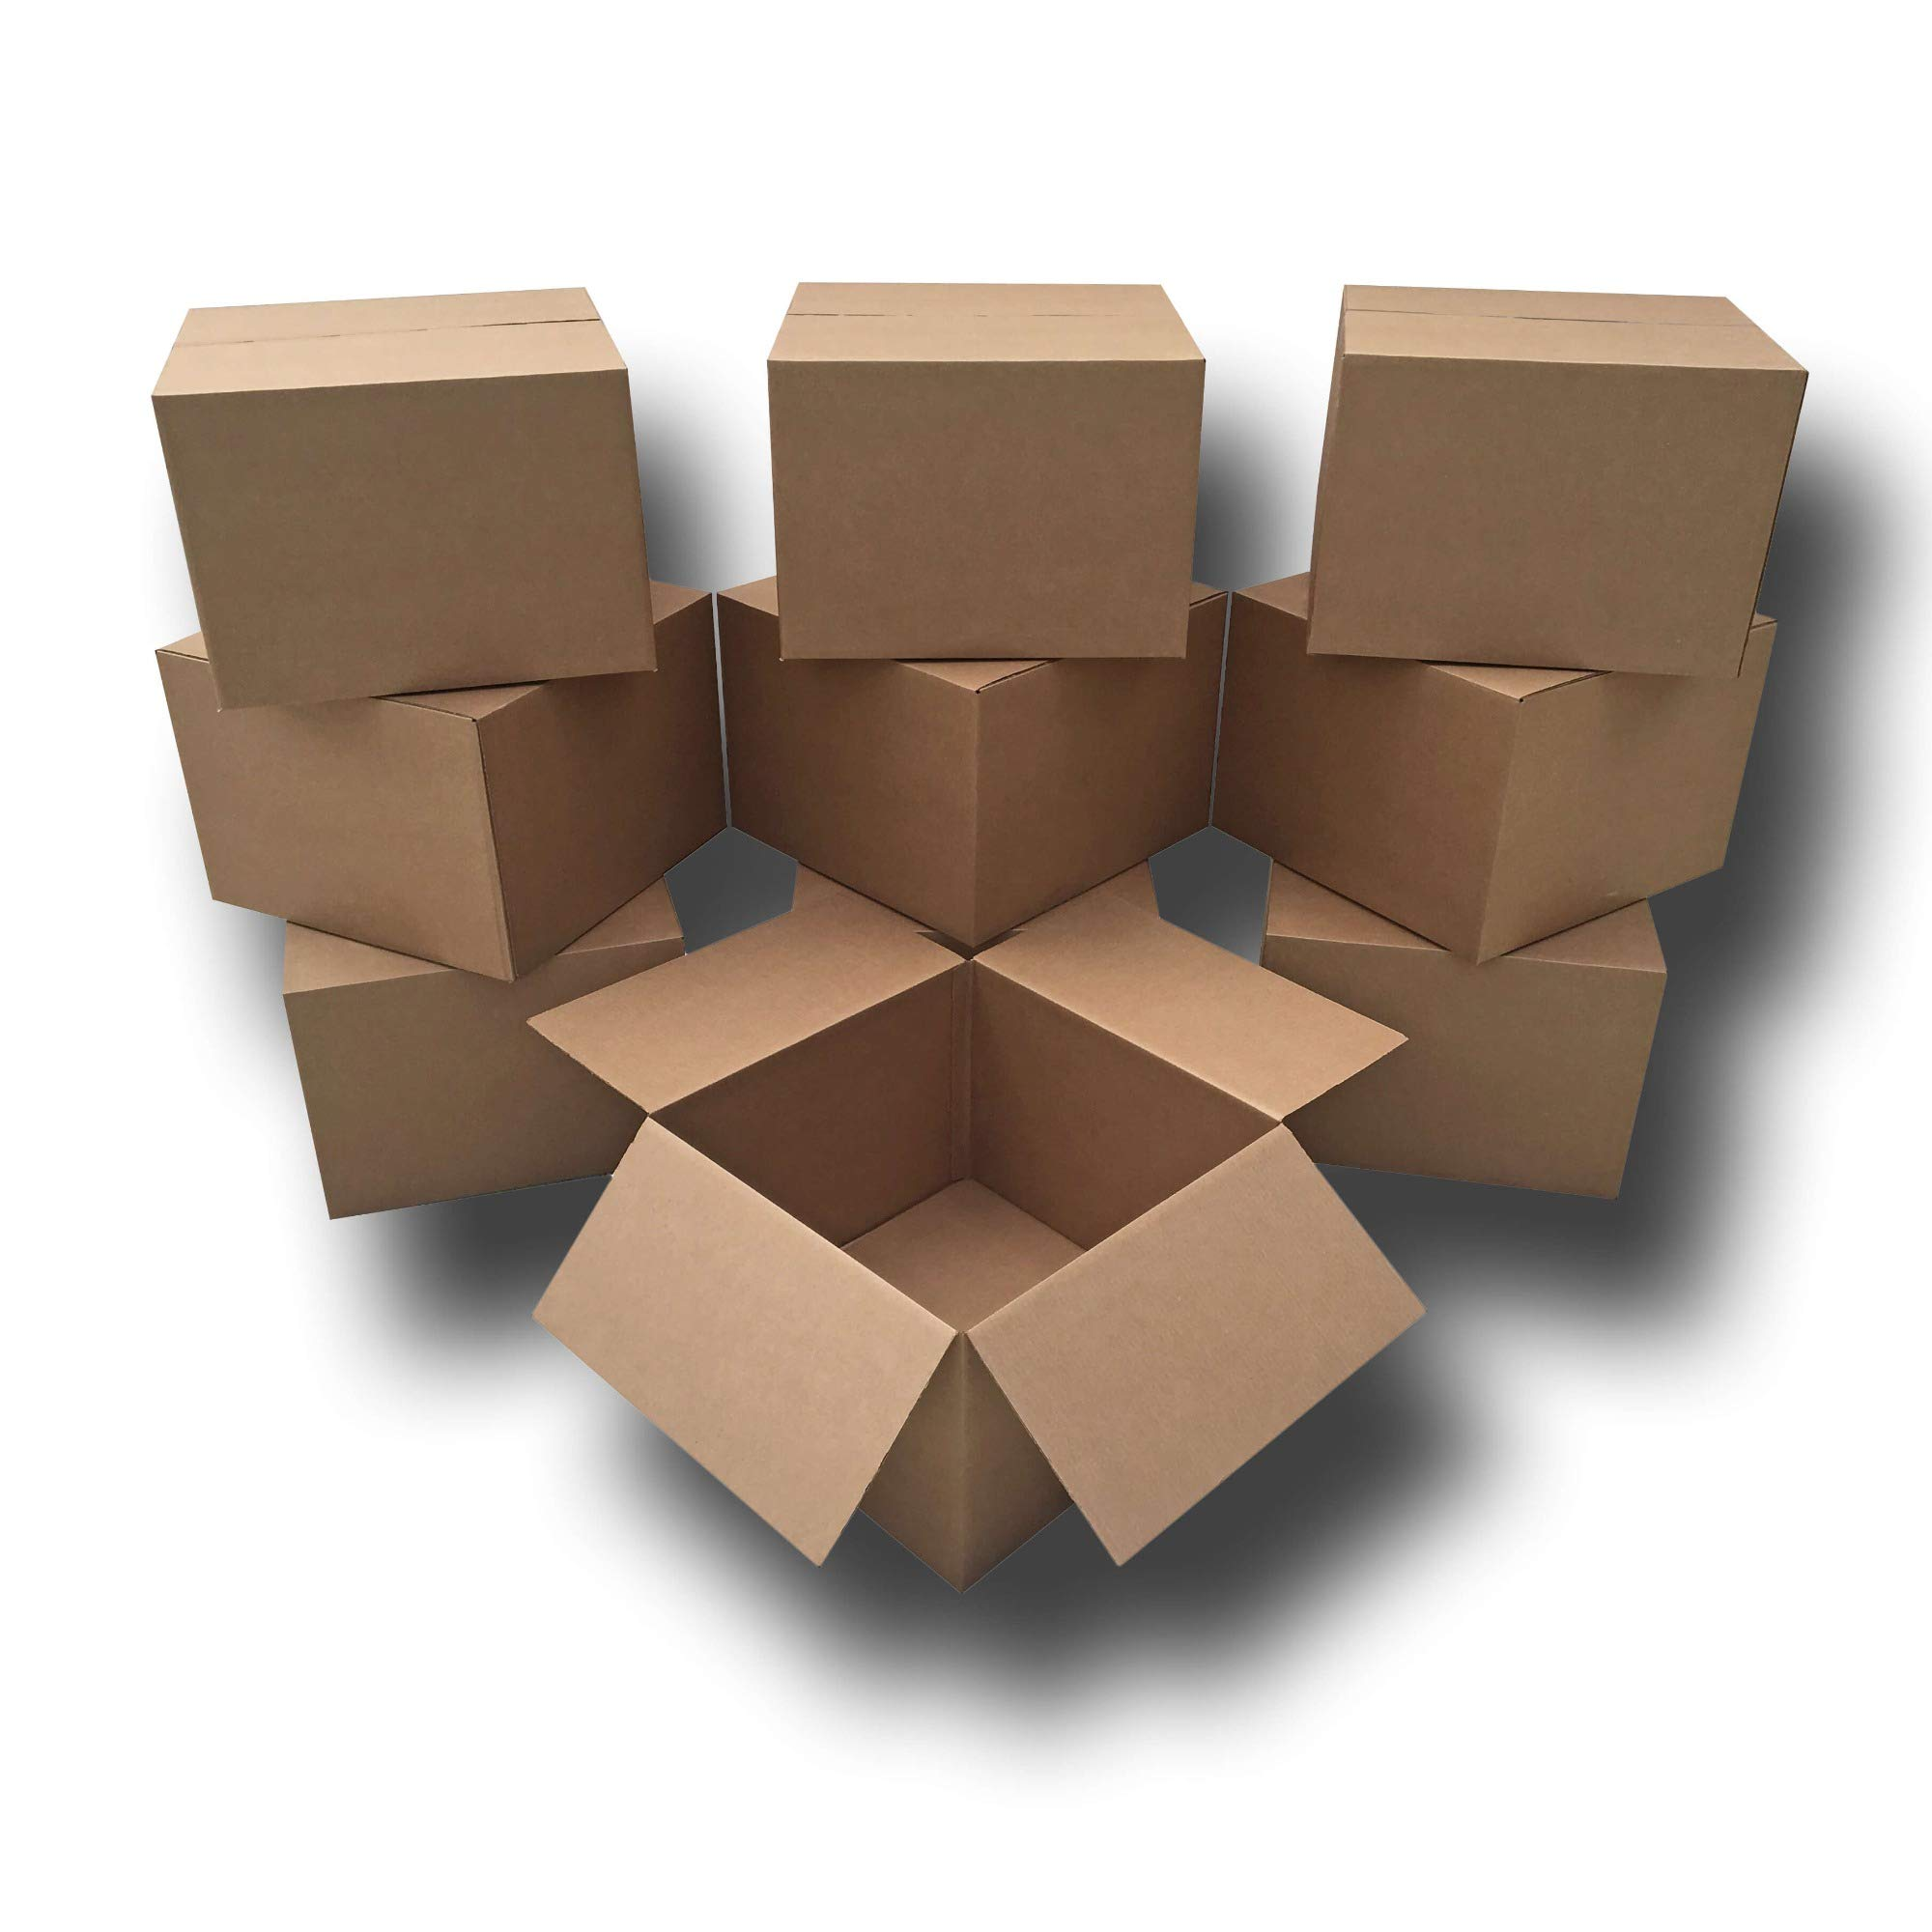 UBOXES 10 Extra Large Moving Boxes 23x23x16'' Standard Corrugated Moving Box